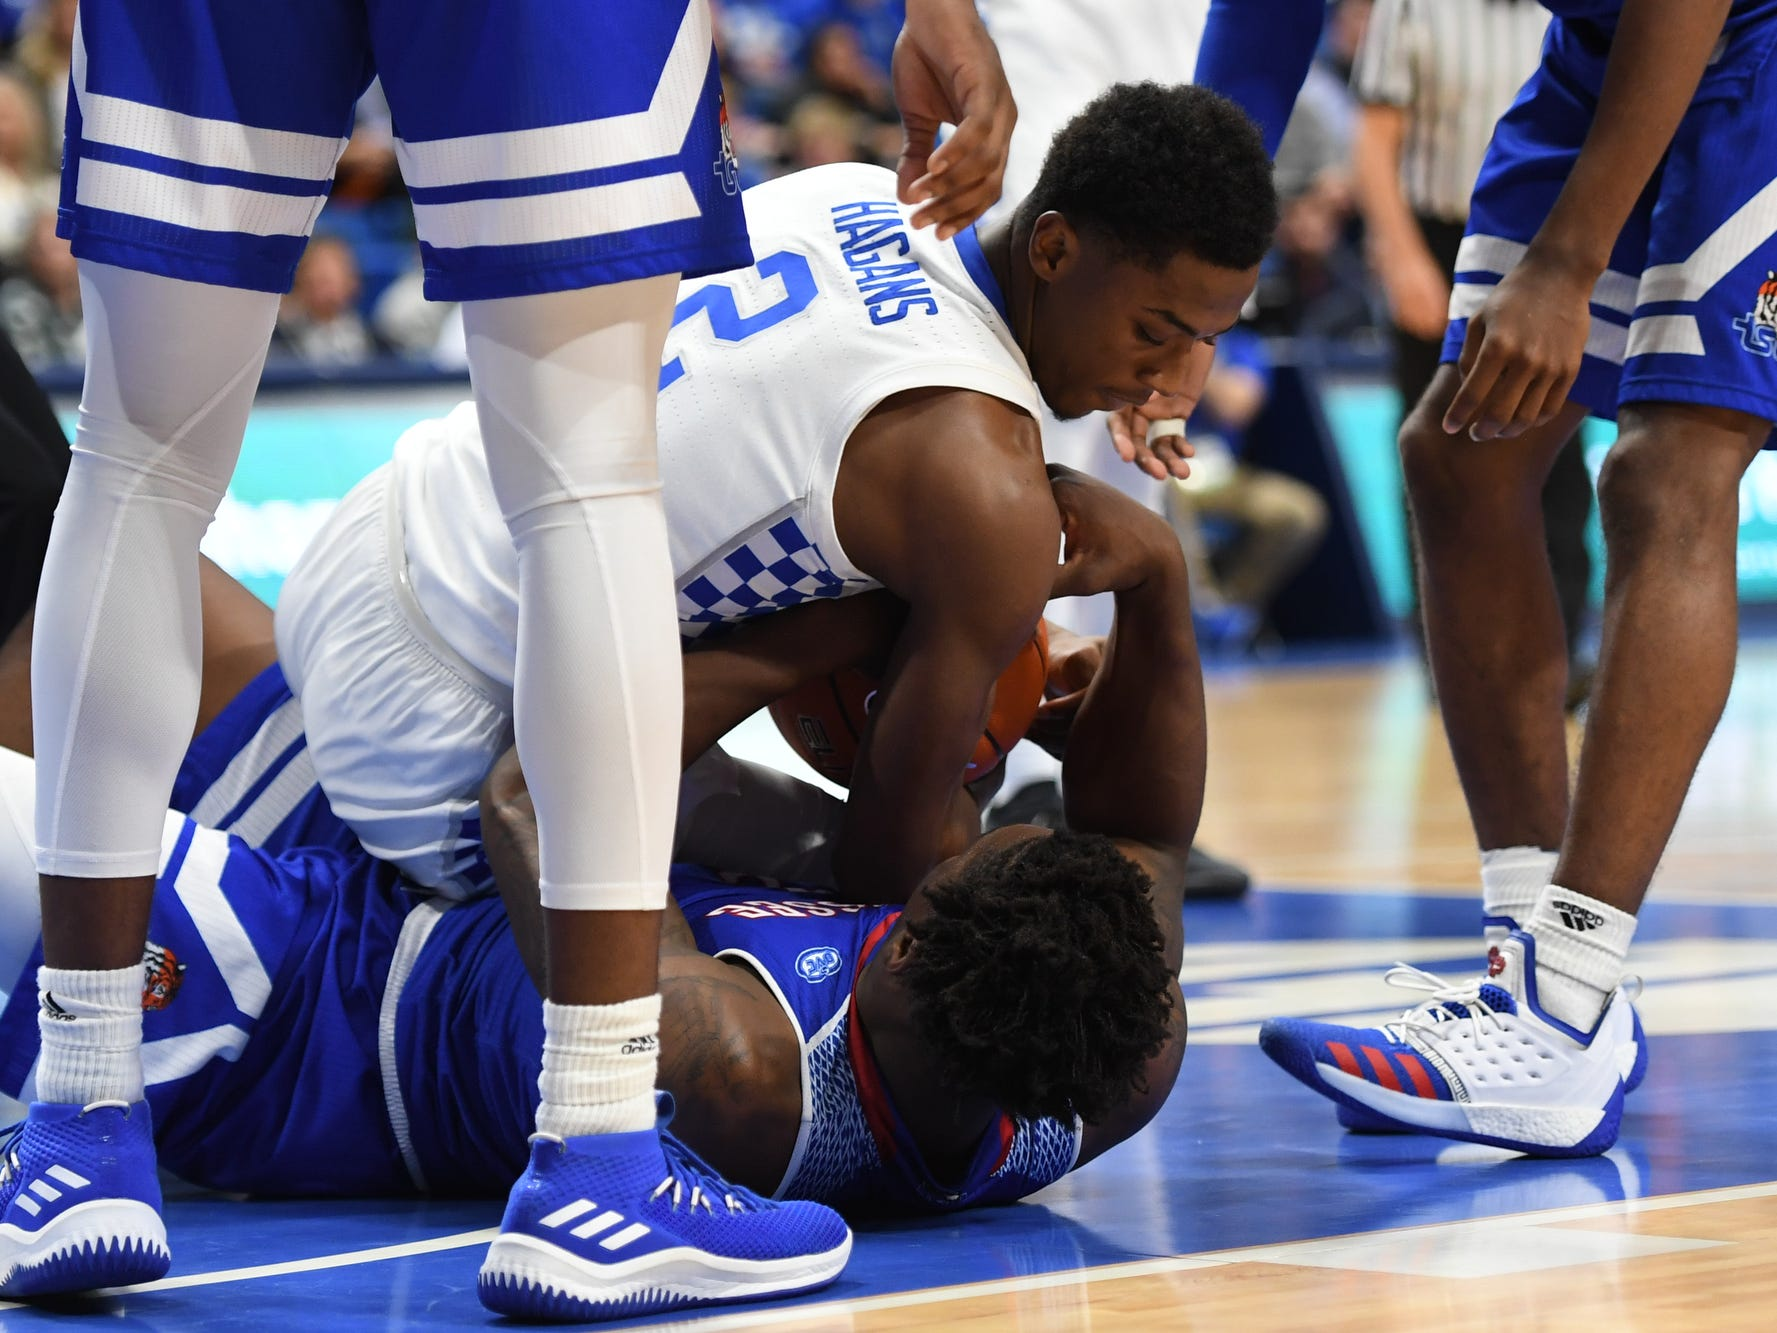 UK G Ashton Hagans fights for the ball during the University of Kentucky men's basketball game against Tennessee State at Rupp Arena in Lexington, Kentucky, on Friday, Nov. 23, 2018.